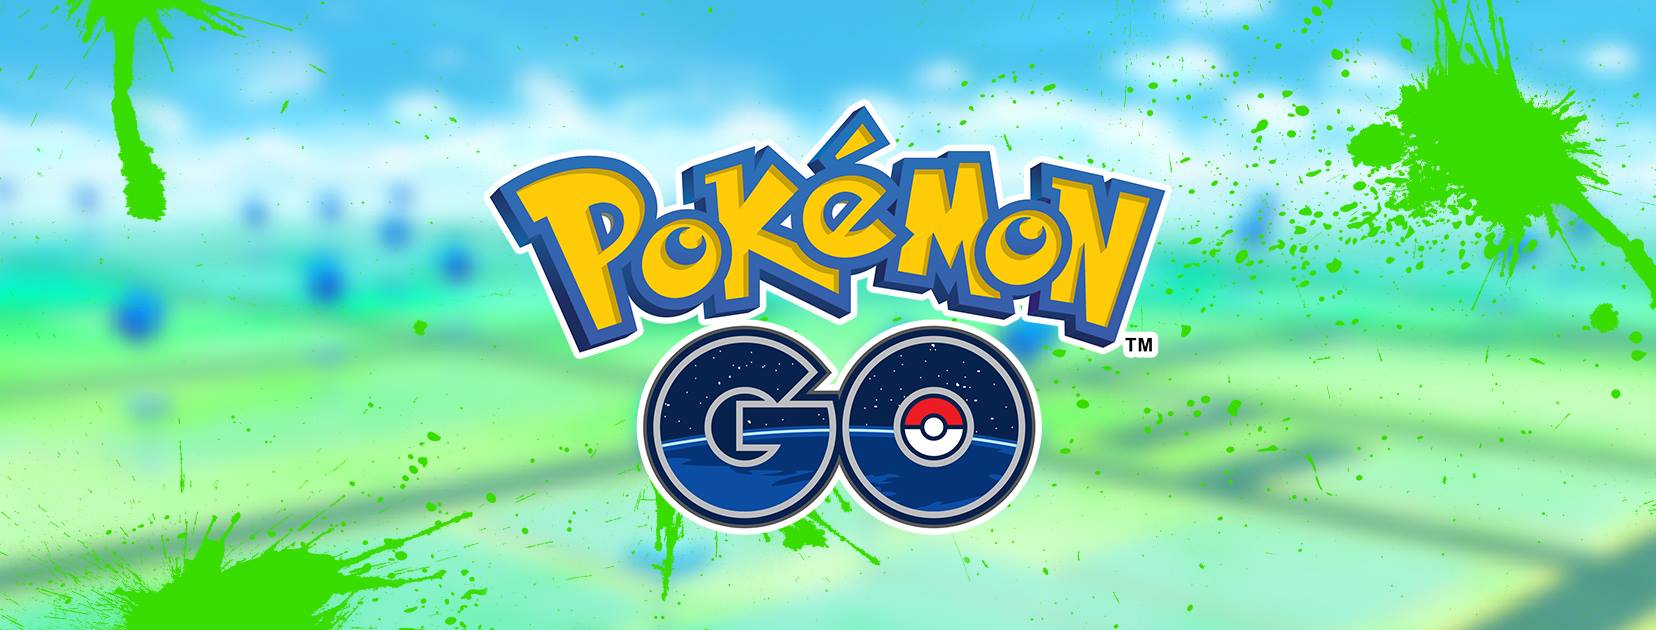 NEW ] Verified Trending Pokemon Go Promo Codes → Aug 2019